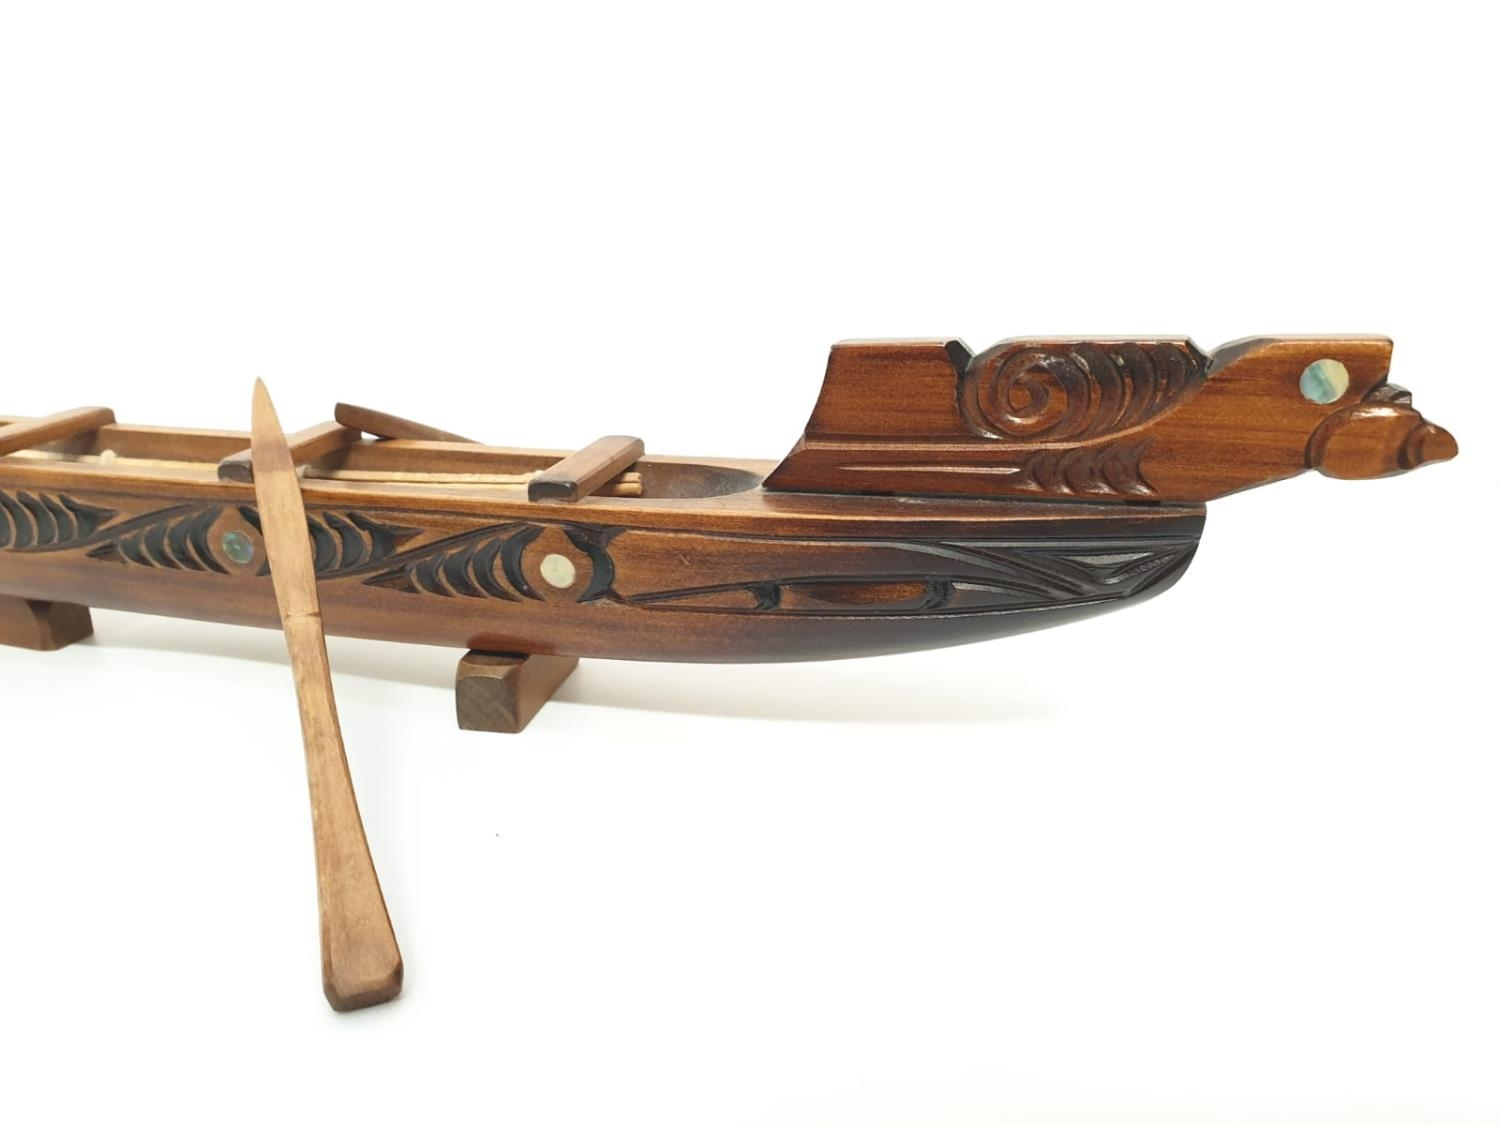 Hawaiian hand carved wooden boat, 49x20cm - Image 2 of 9